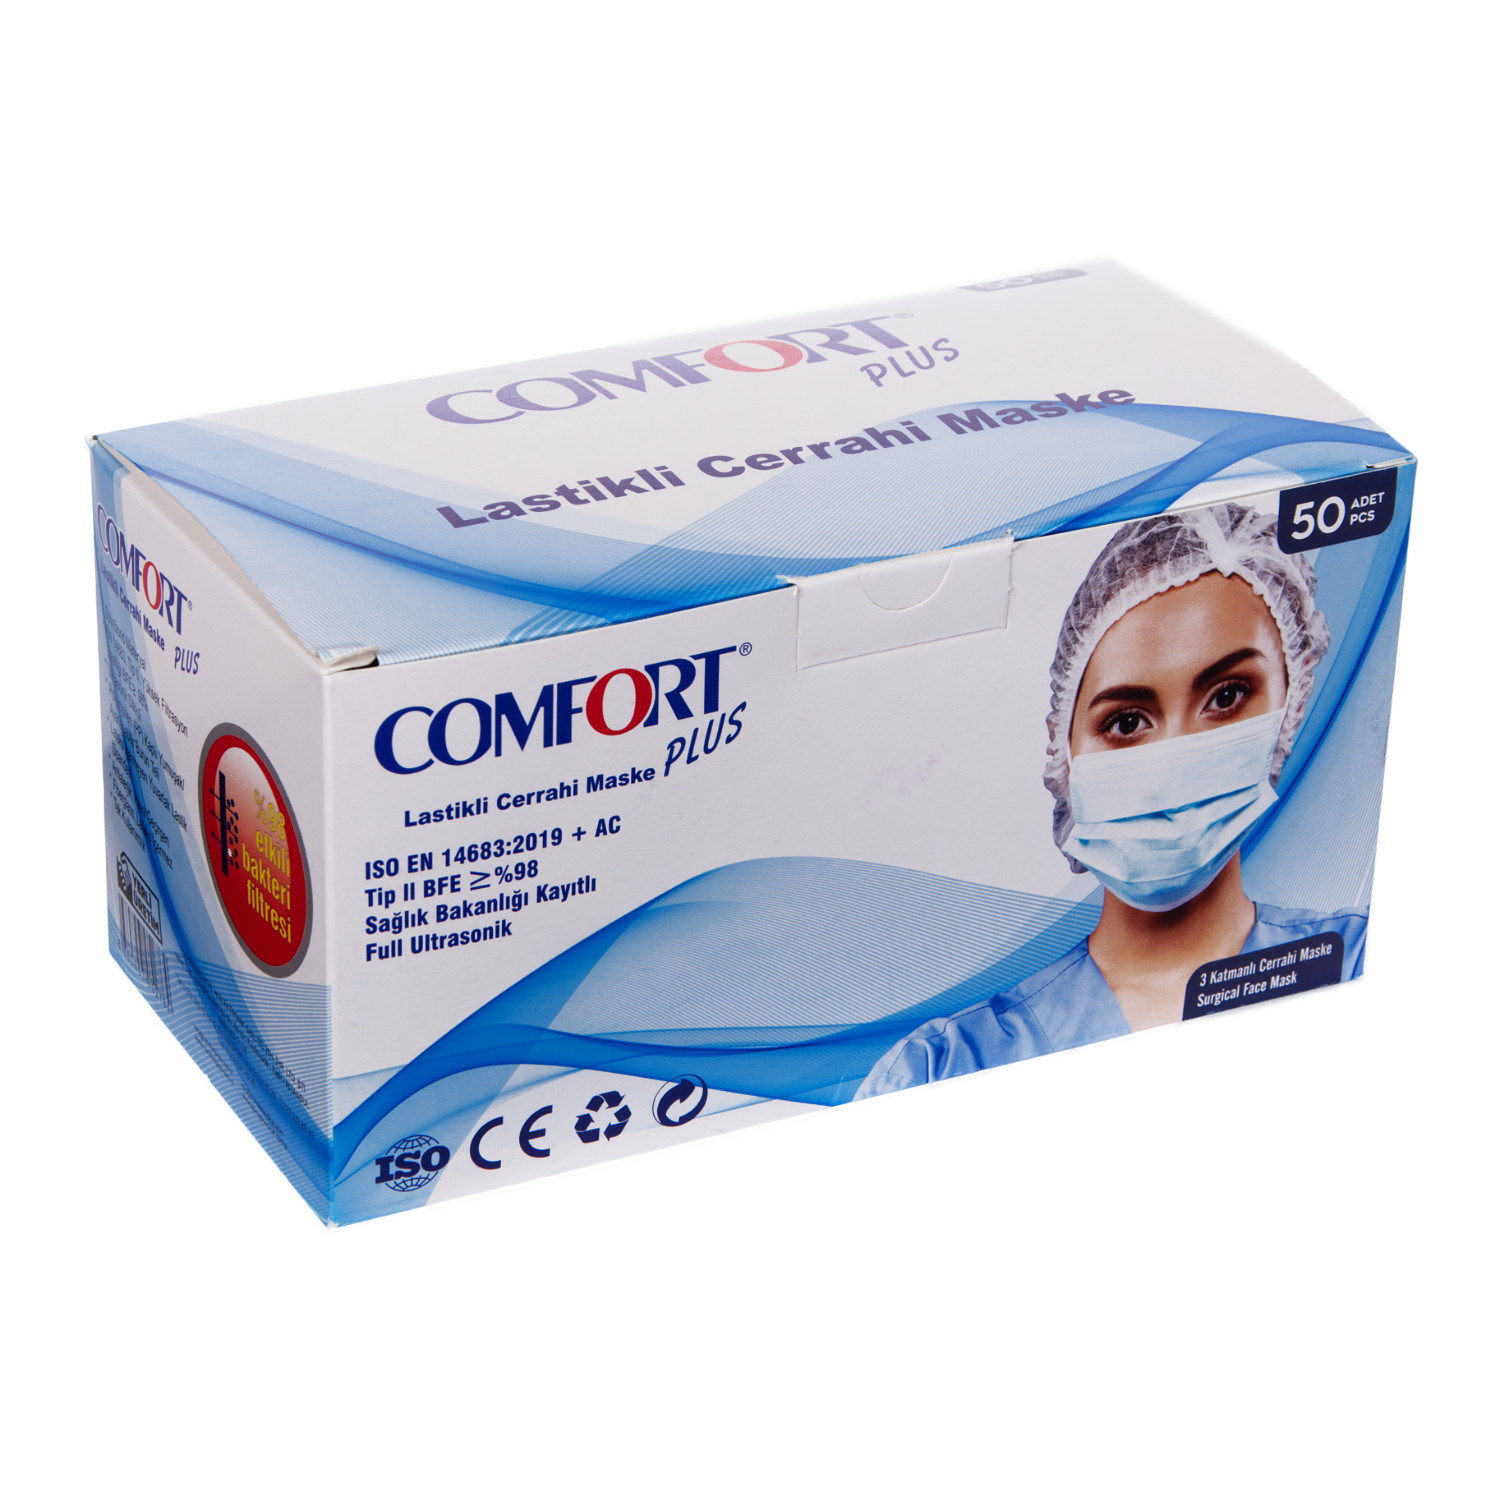 Comfort Plus 3 Katlı Cerrahi Maske Full Ultrasonic